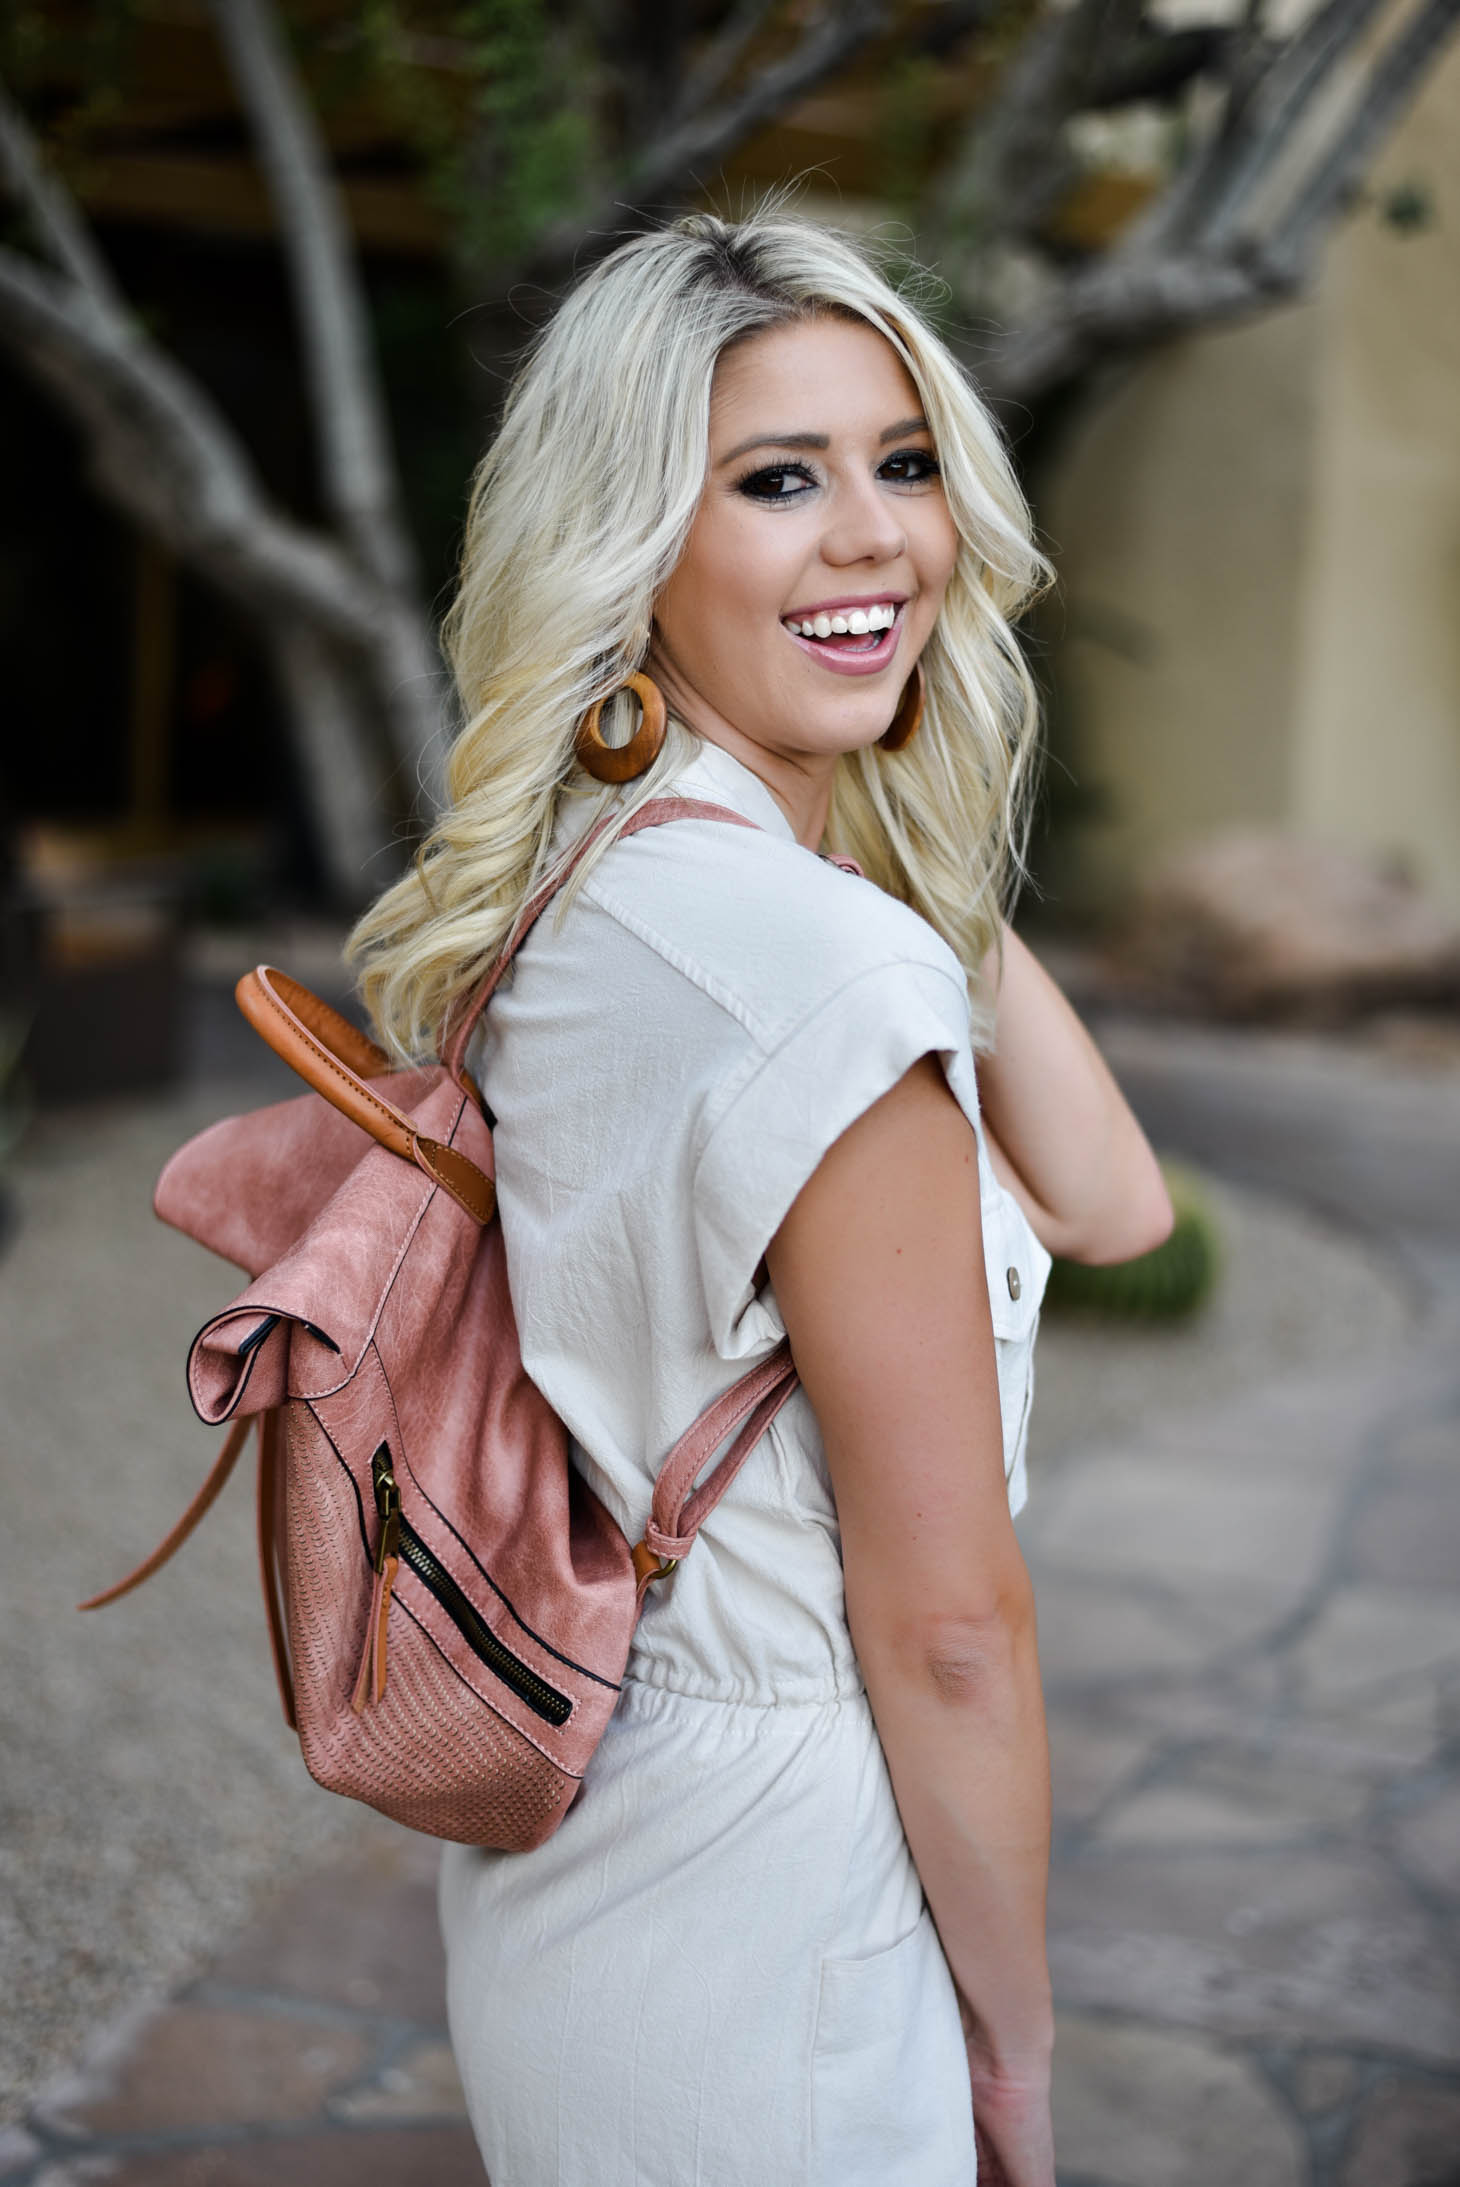 Erin Elizabeth of Wink and a Twirl in this Vici Dolls Tie Romper and Backpack Summer Style